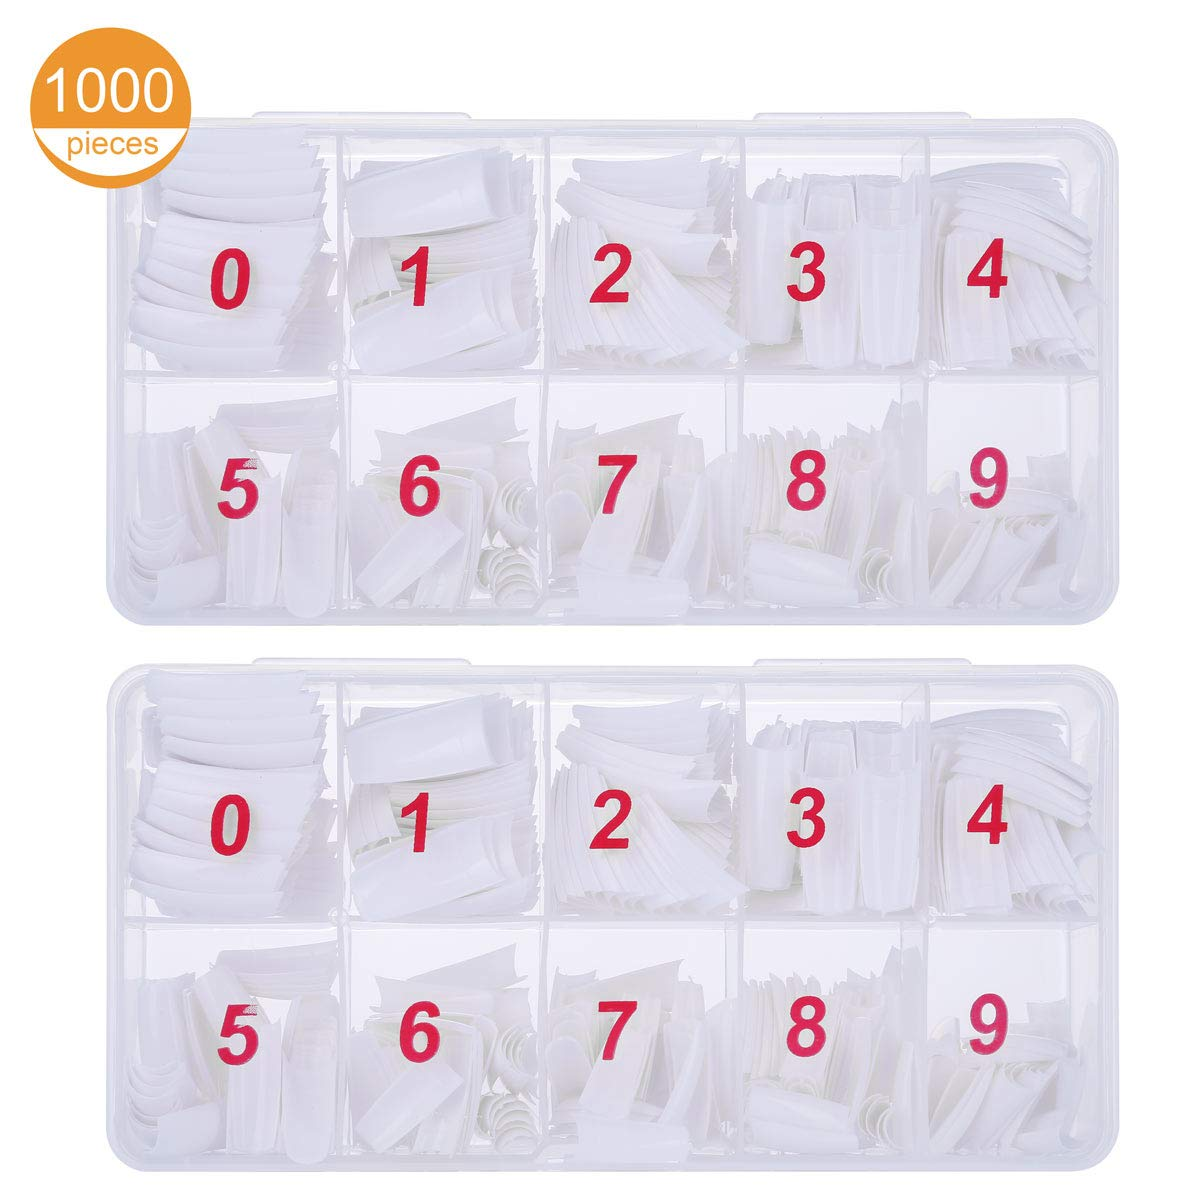 1000 Pcs White Natural False Nails 10 Sizes Oval Fake Nail French Acrylic Style Artificial Fake Art Nails Tips with Box for Women Girls Tbestmax